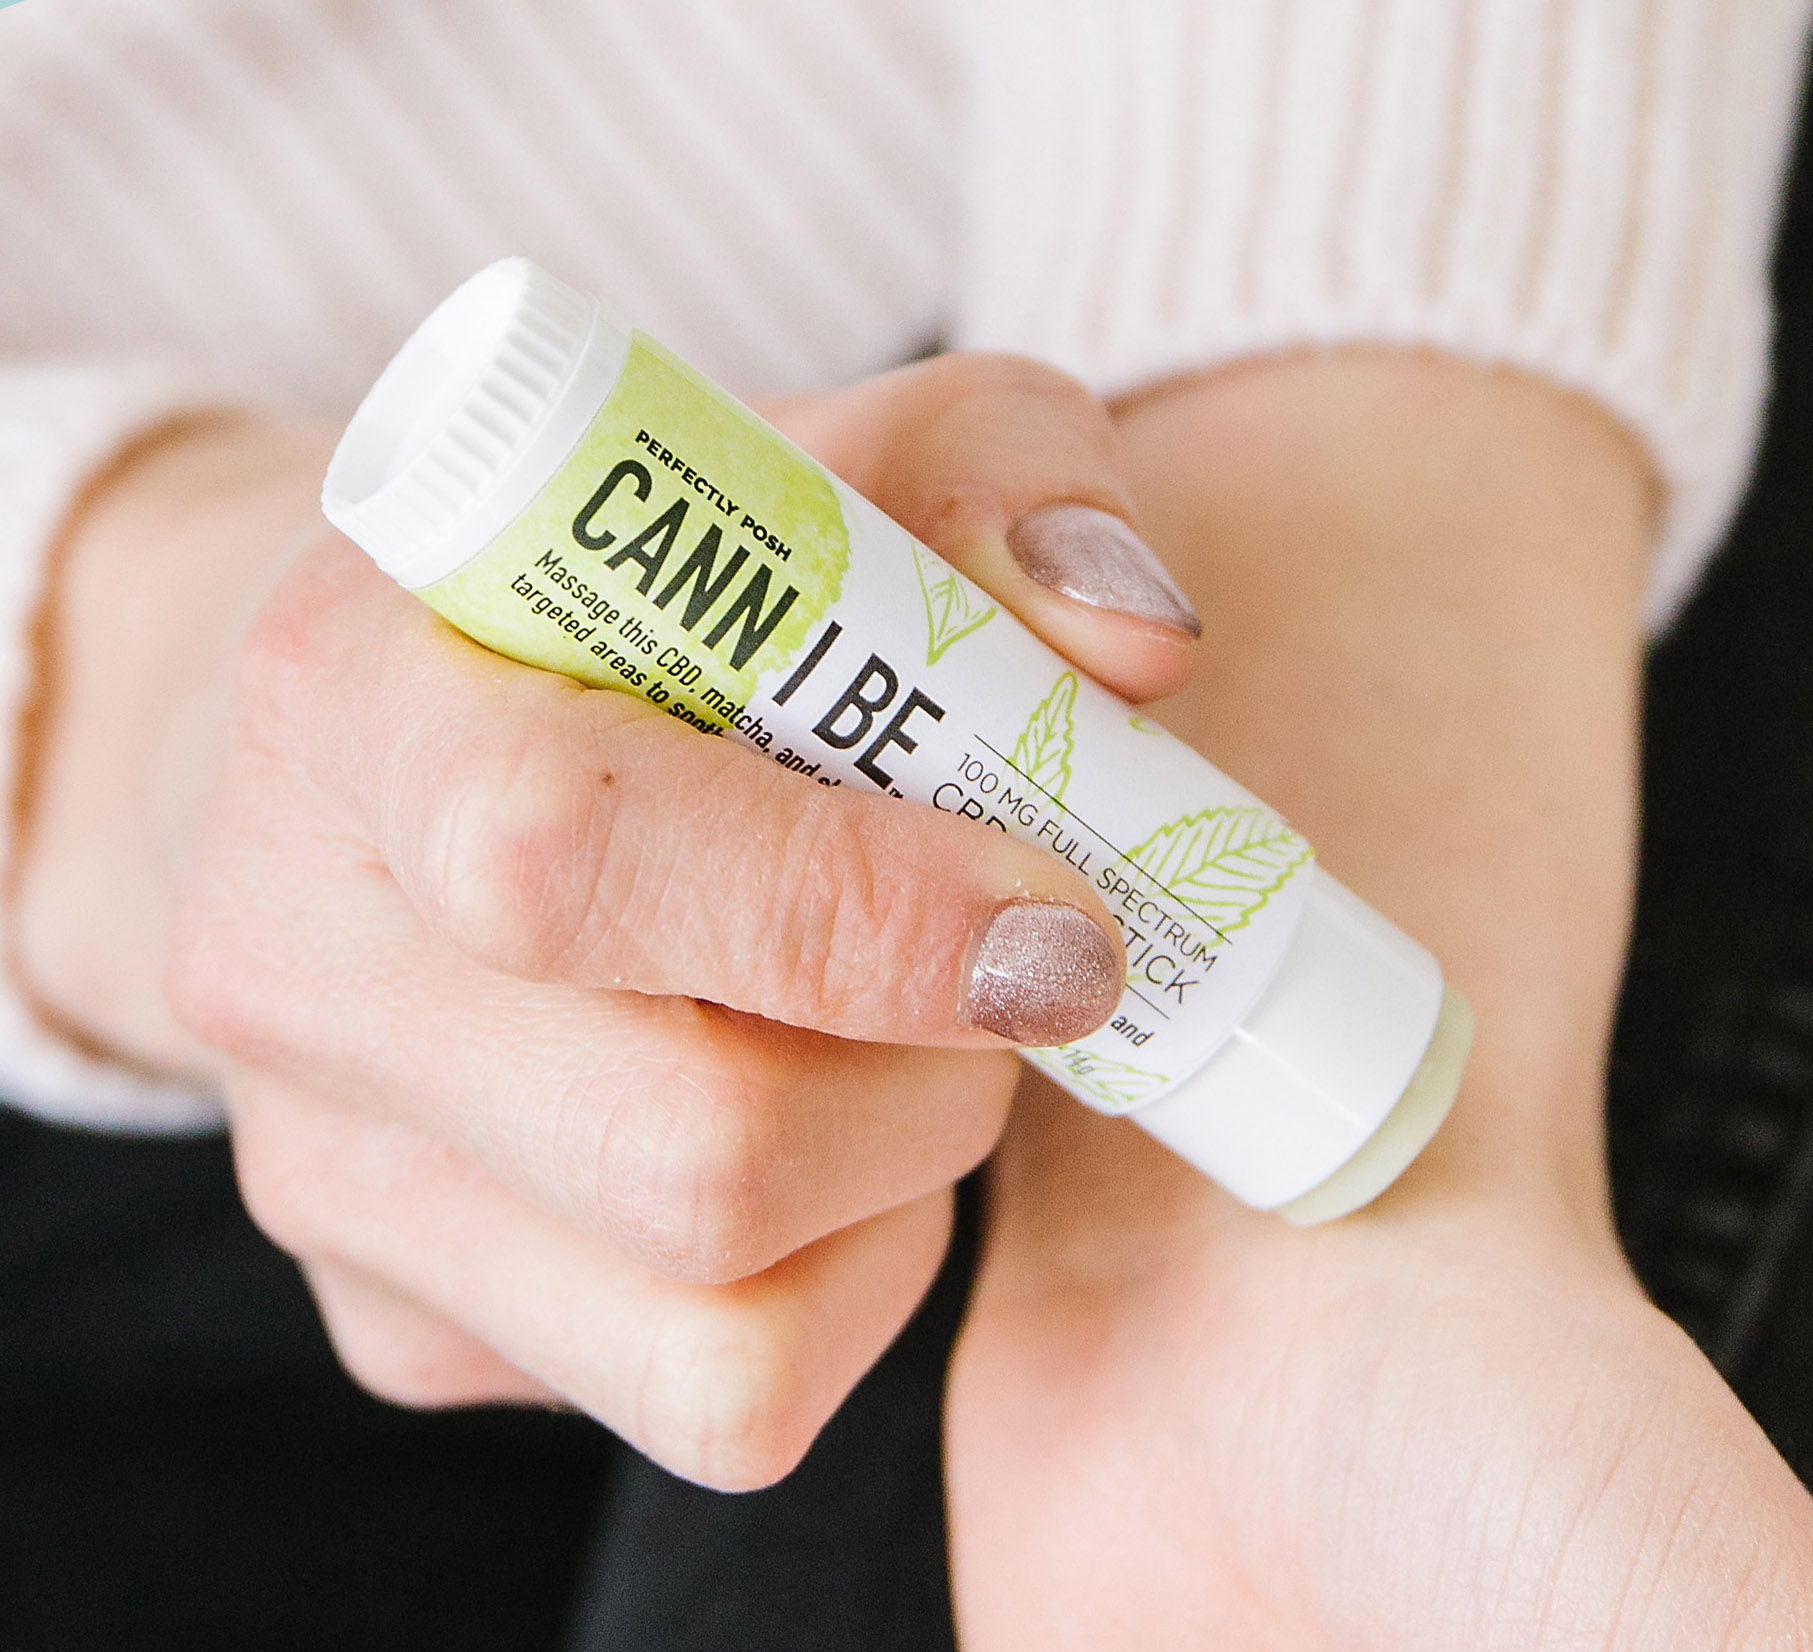 Using Perfectly Posh Cann I Be 100 mg full-spectrum CBD oil Skin Stick on wrist, close up of Cann I Be Skin Stick